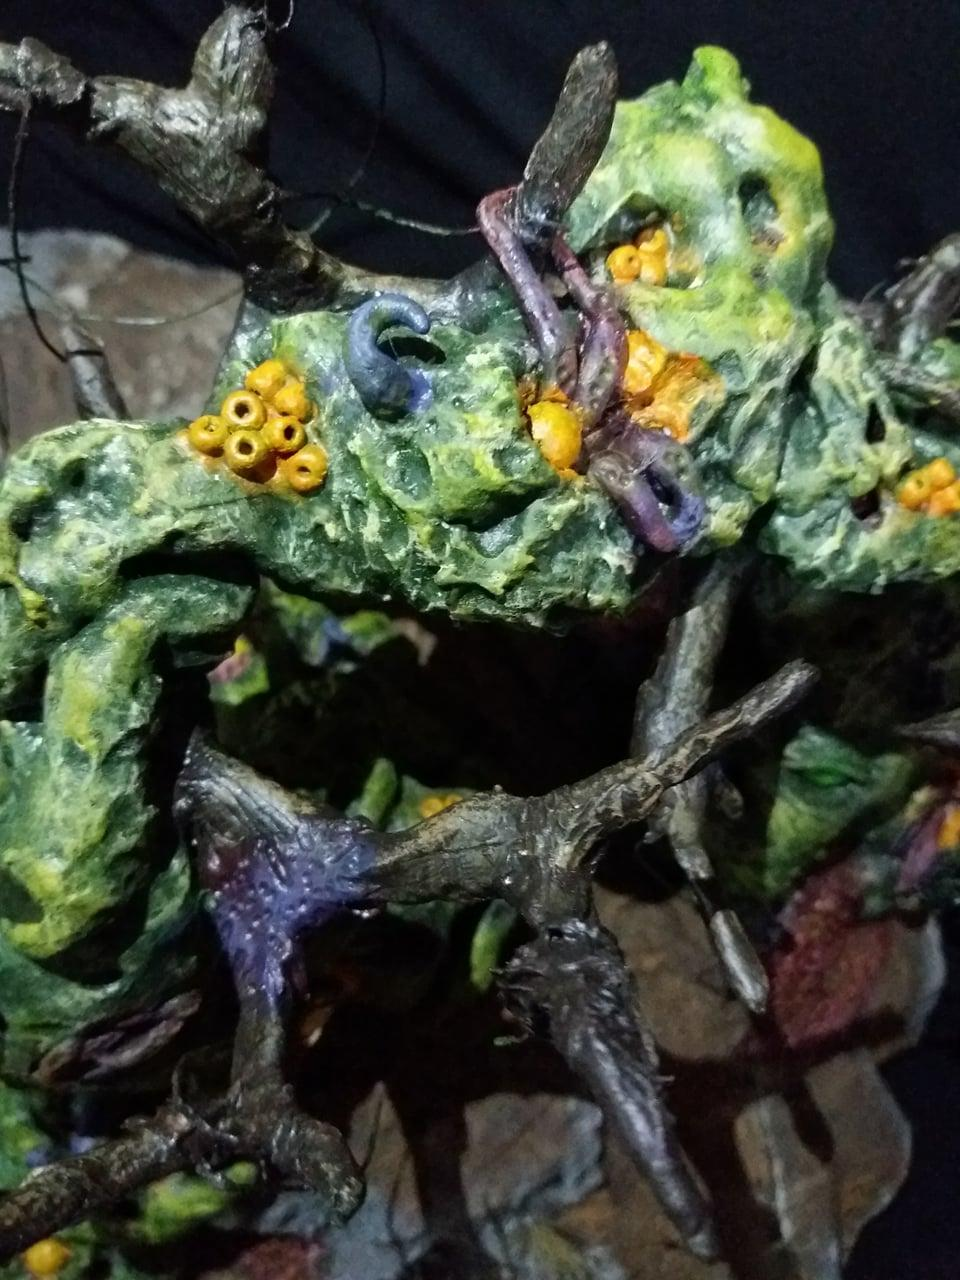 Age, Chaos, Eyes, Forest, Garden, Horns, Horrors, Infested, Nurgle, Passage, Sigmar, Teeth, Tentacles, Terrain, Ulcers, Warhammer Fantasy, Woods